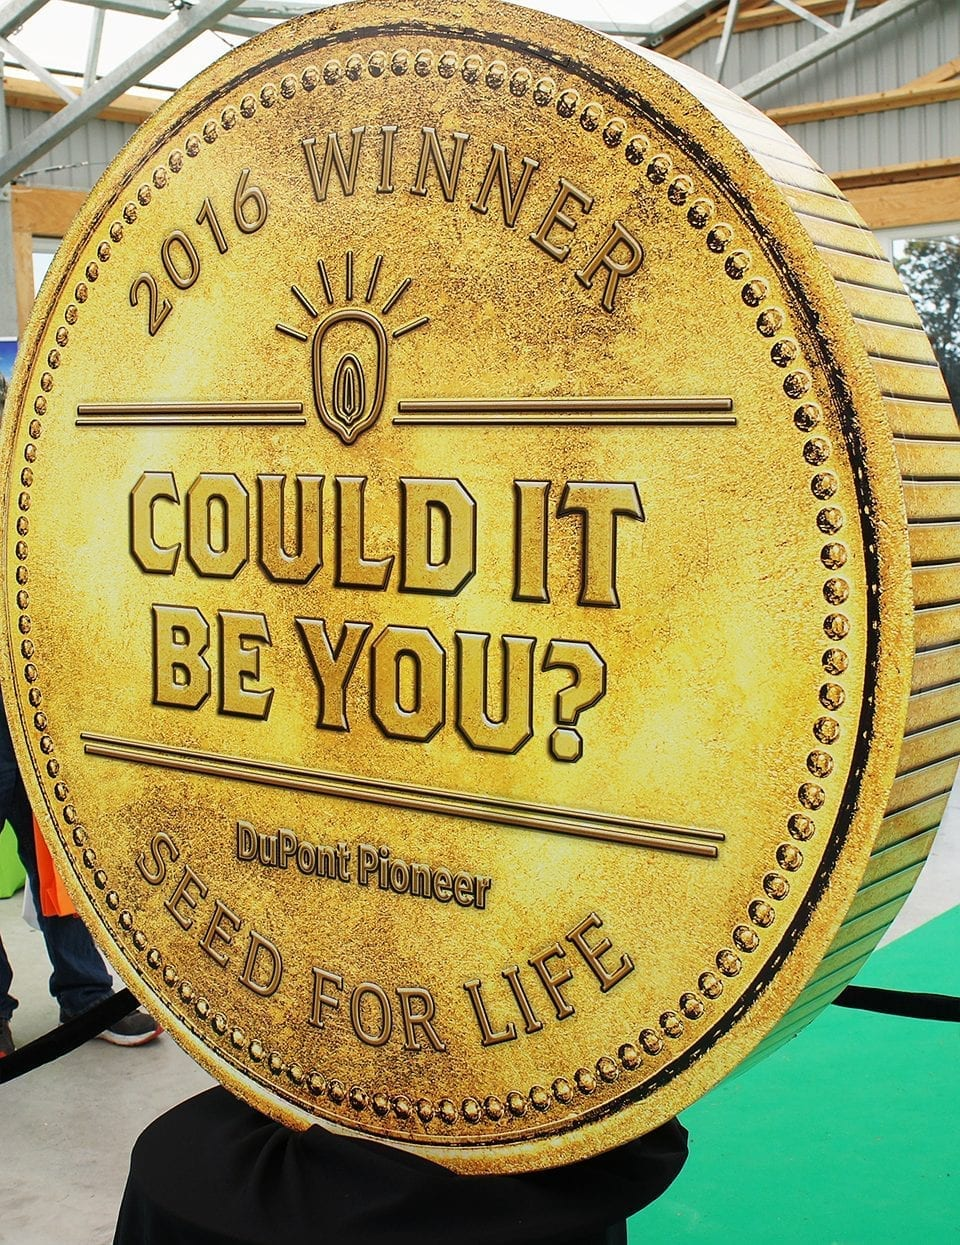 DuPont Pioneer Seed for Life grand prize winner guerilla